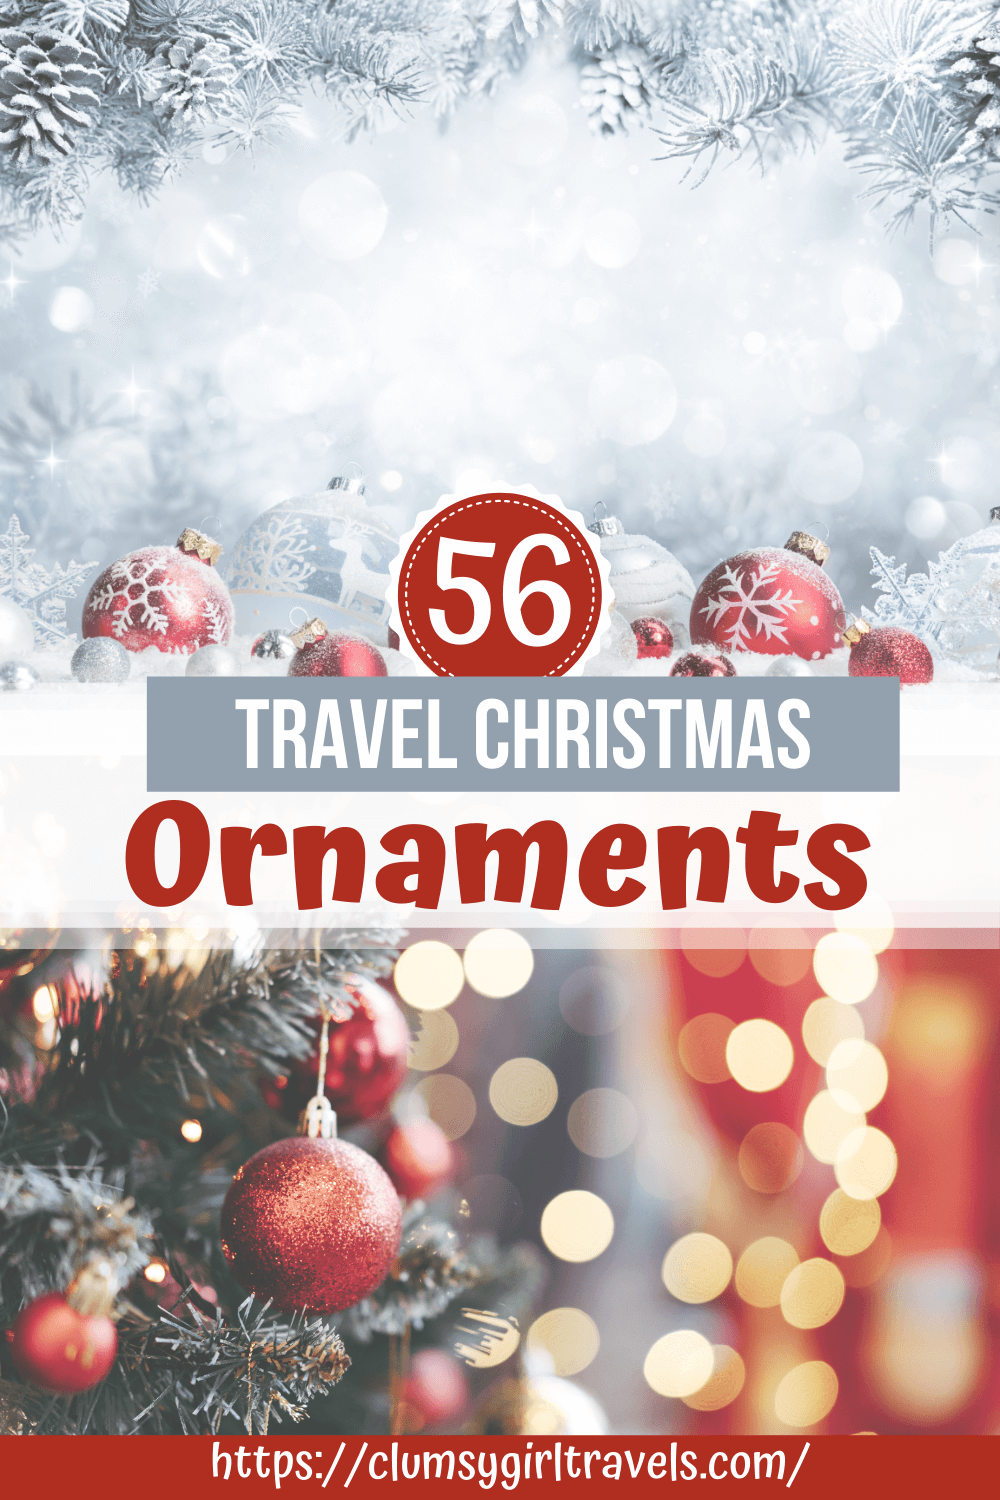 If you love travel and are looking to spice up your tree for the holidays these travel Christmas ornaments will do the trick!